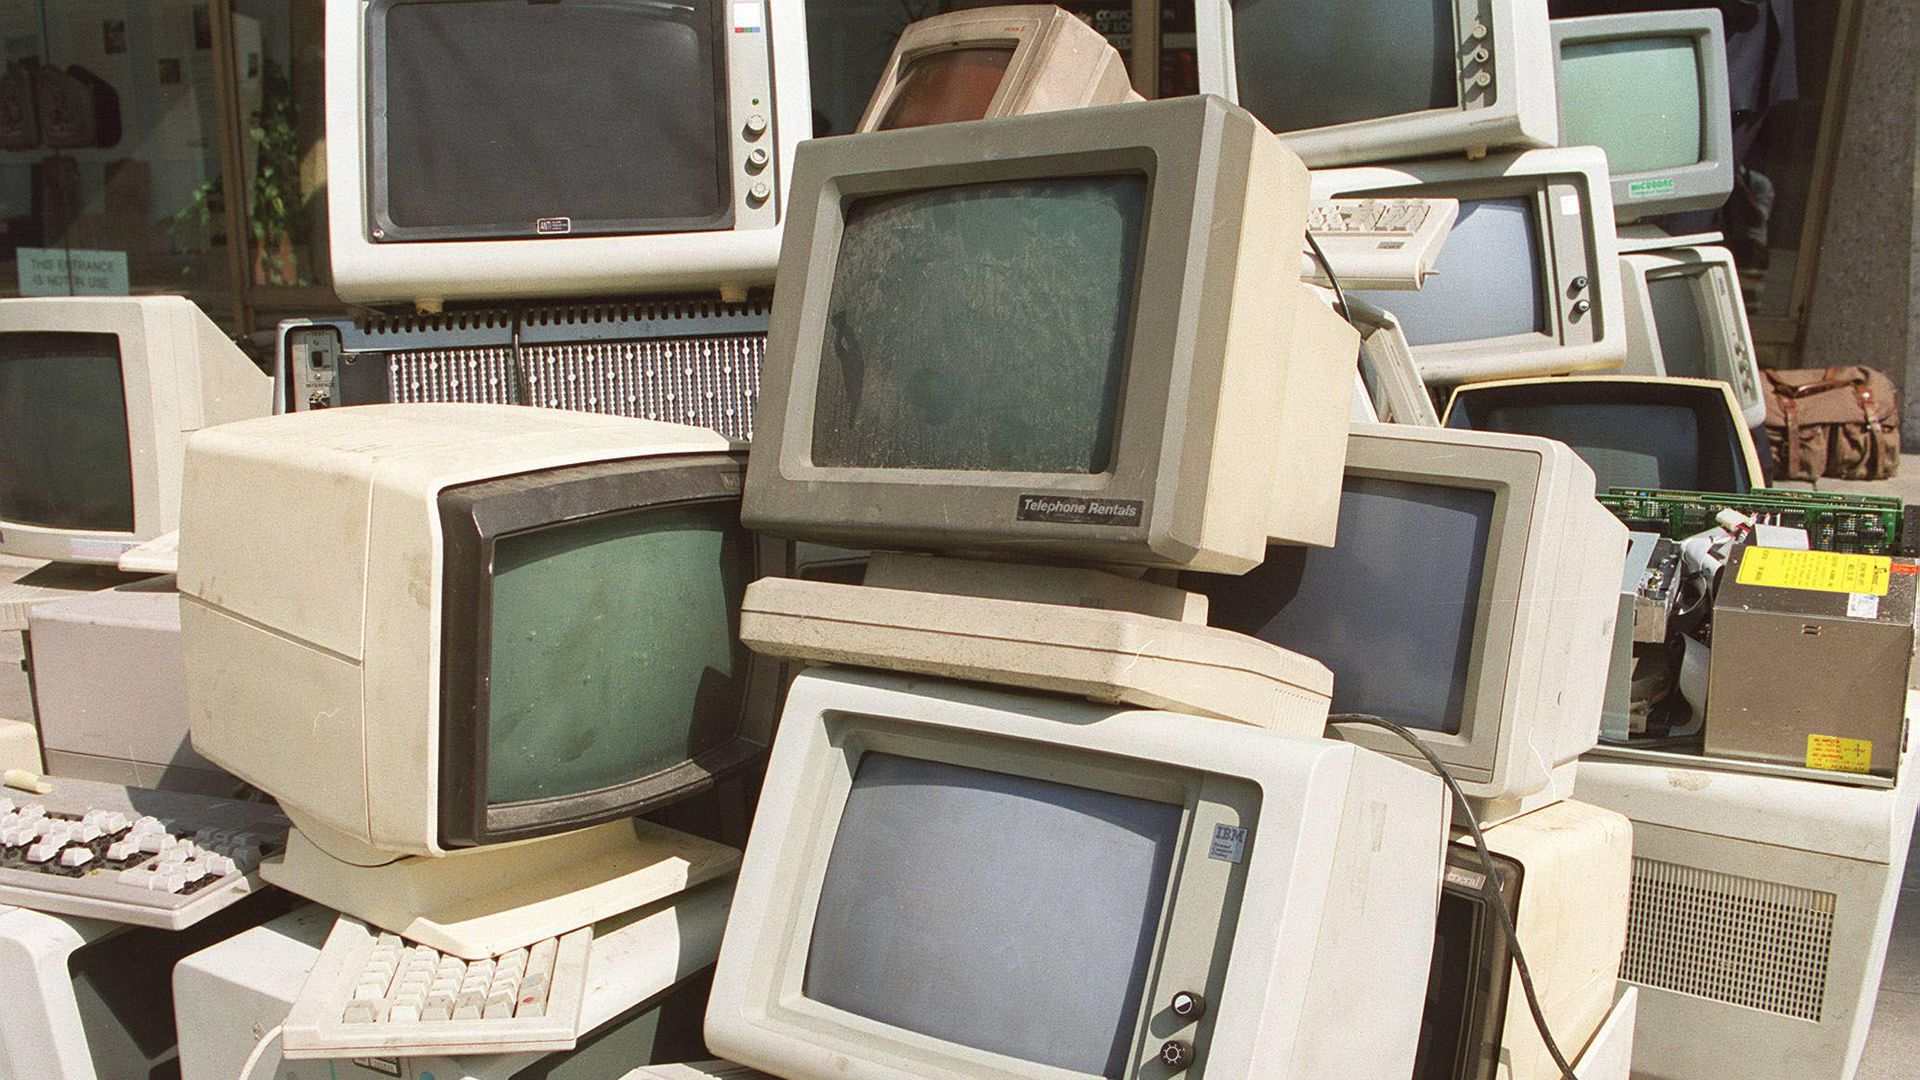 A heap of old computer monitors from the '80s ands '90s